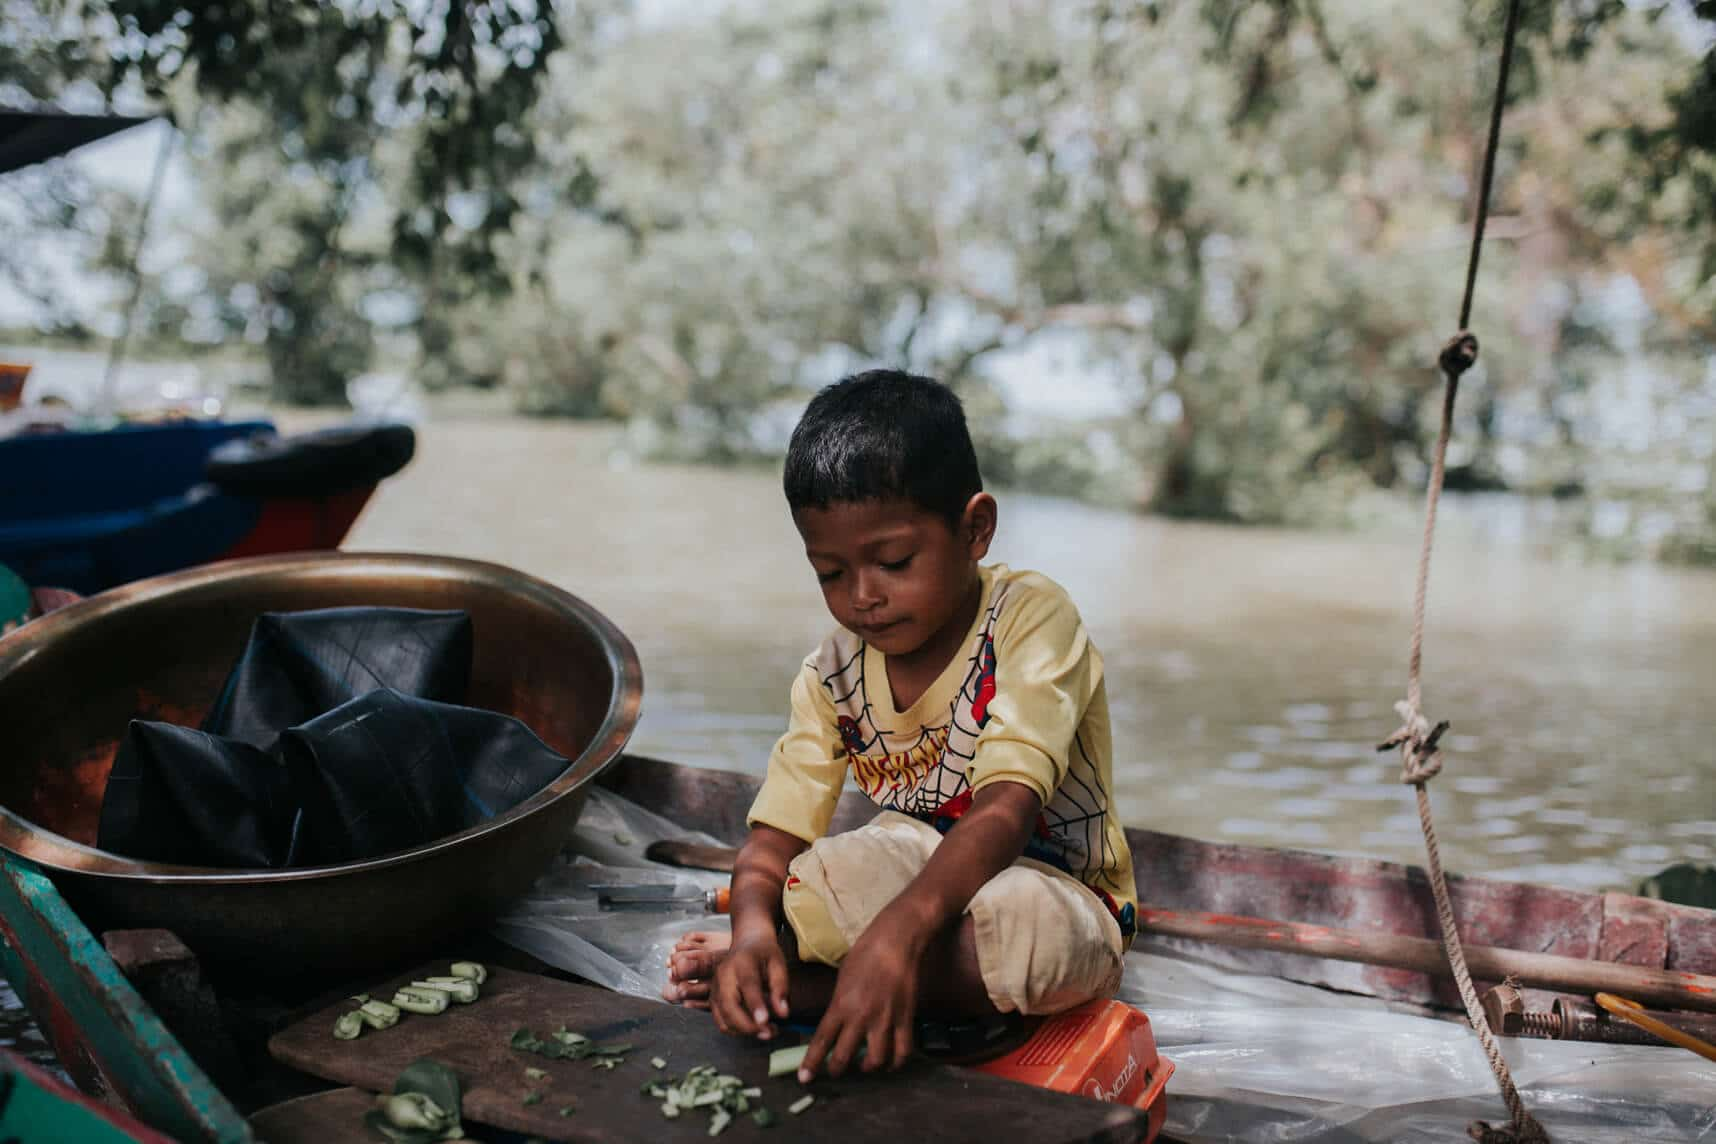 Cambodia photography - Kompong Pluk's flooded forest - Boy in canoe